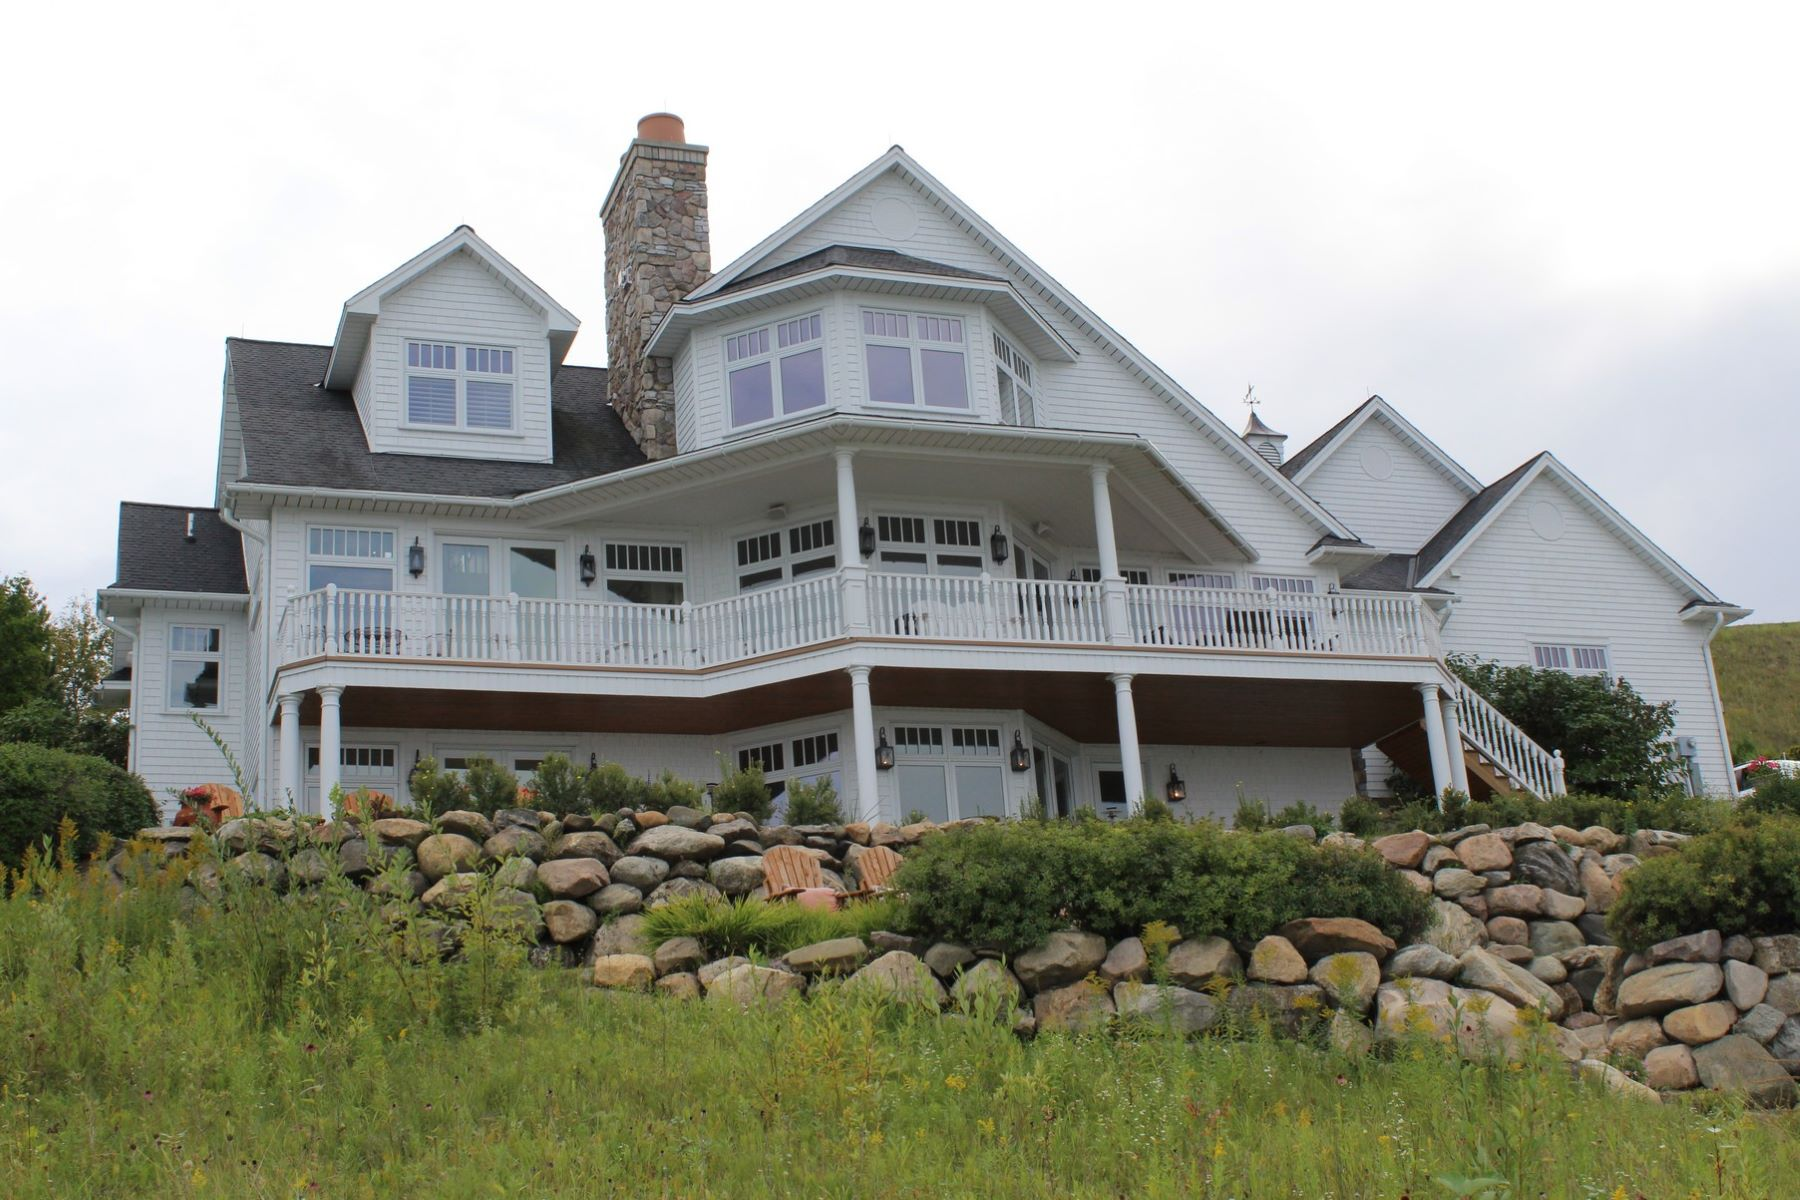 Maison unifamiliale pour l Vente à Bluff-Side Coastal Home on Lake Michigan 5192 Coastal Drive Bay Harbor, Michigan, 49770 États-Unis